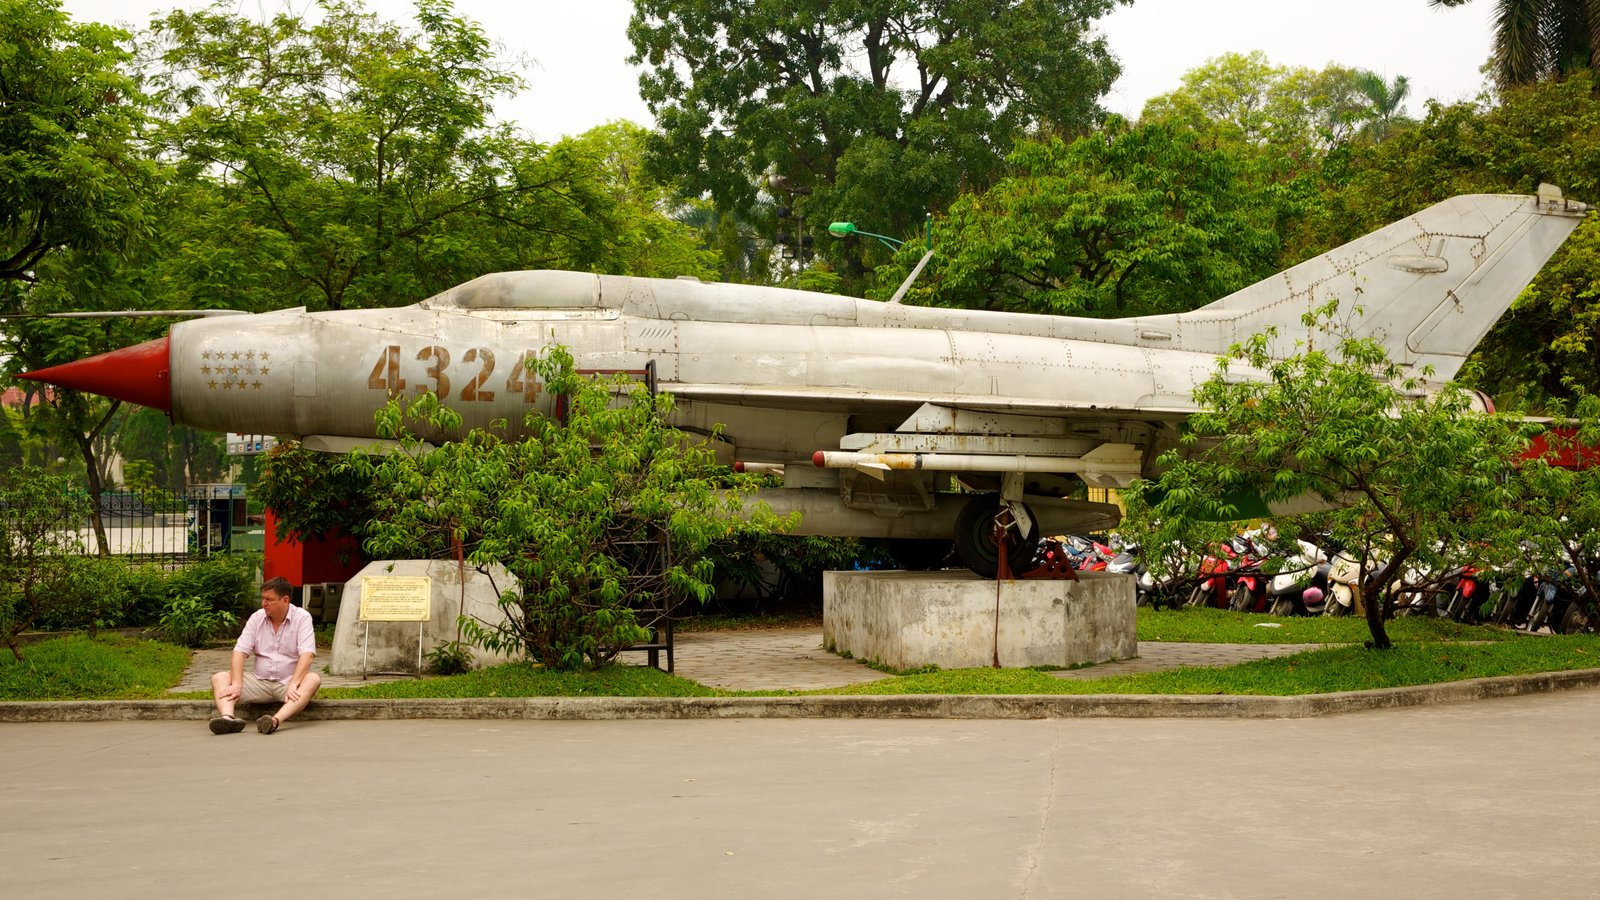 Hanoi War Museum which includes military items and aircraft as well as an individual male